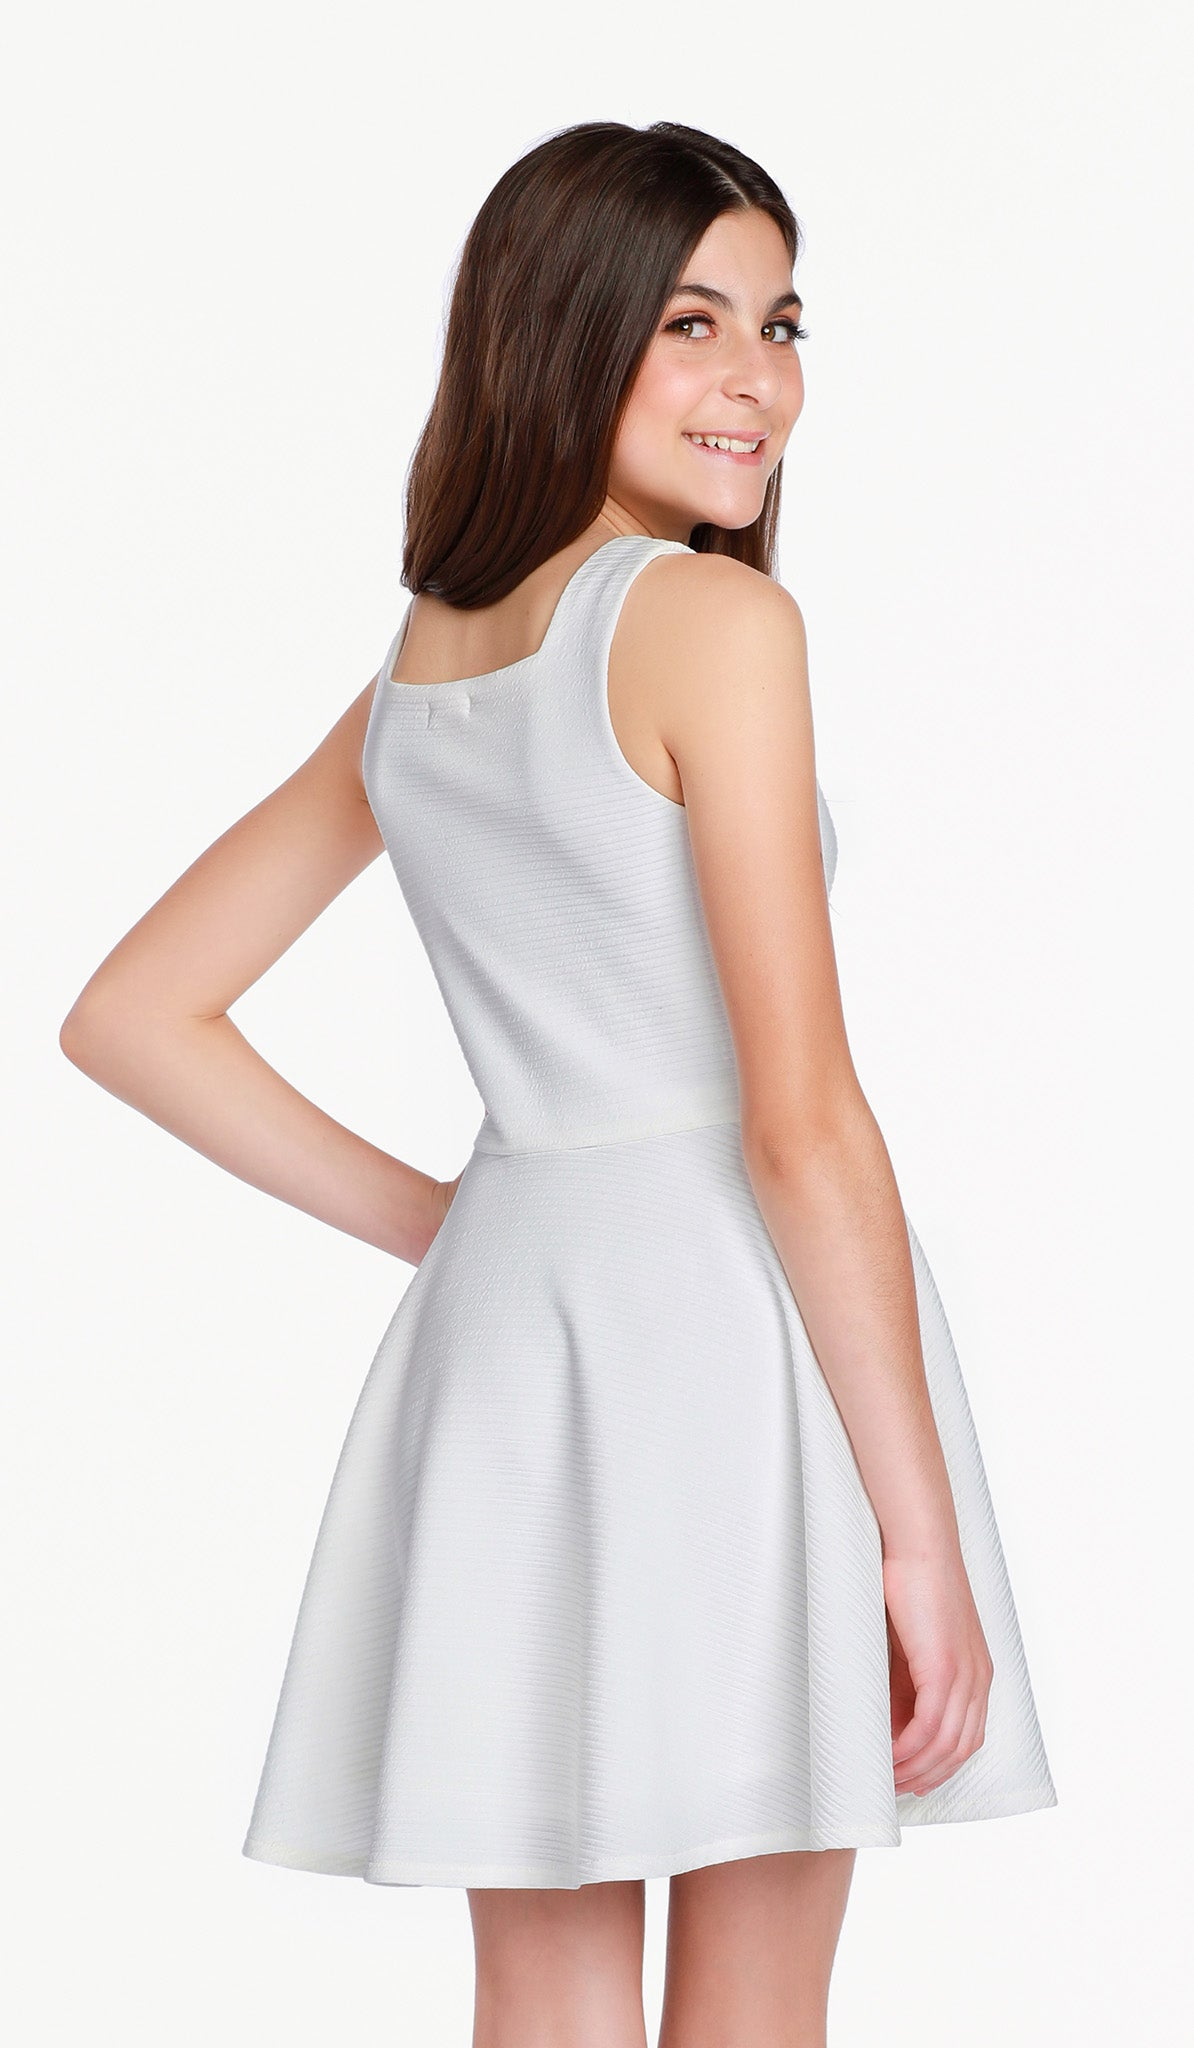 THE CARRIE DRESS - Sallymiller.com - [variant title] - | Event & Party Dresses for Tween Girls & Juniors | Weddings Dresses, Bat Mitzvah Dresses, Sweet Sixteen Dresses, Graduation Dresses, Birthday Party Dresses, Bar Mitzvah Dresses, Cotillion Dresses